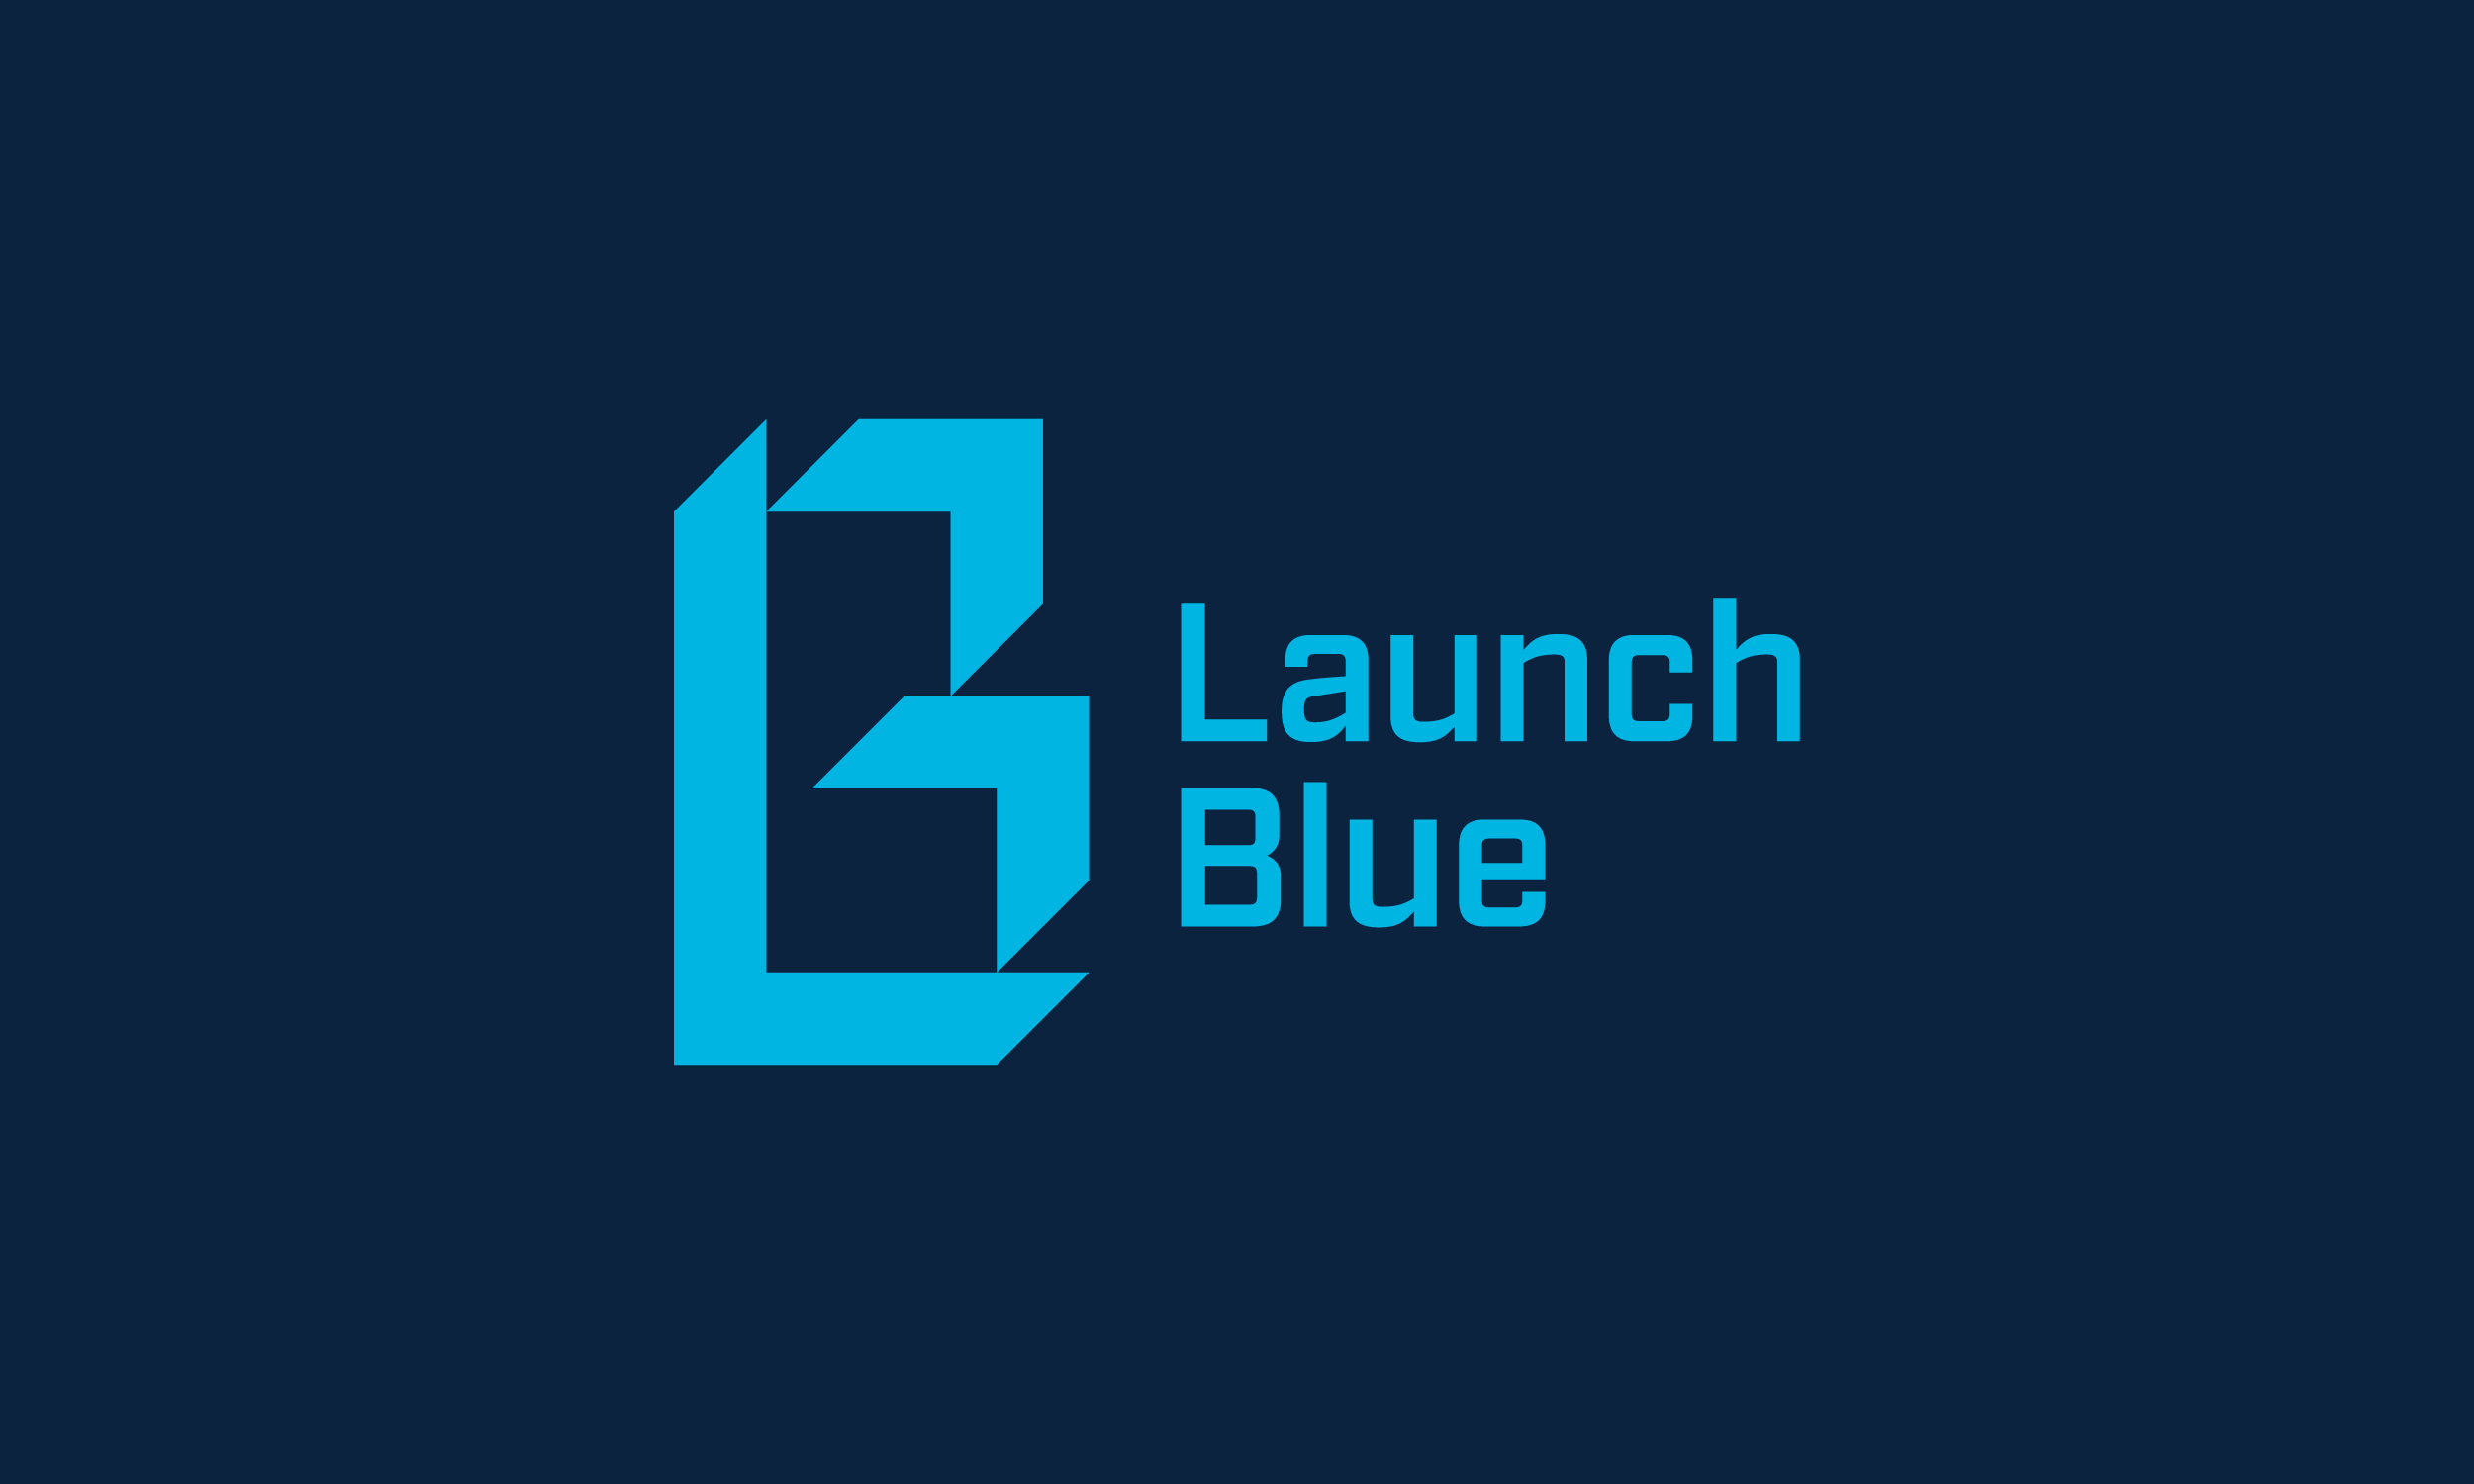 Launch Blue